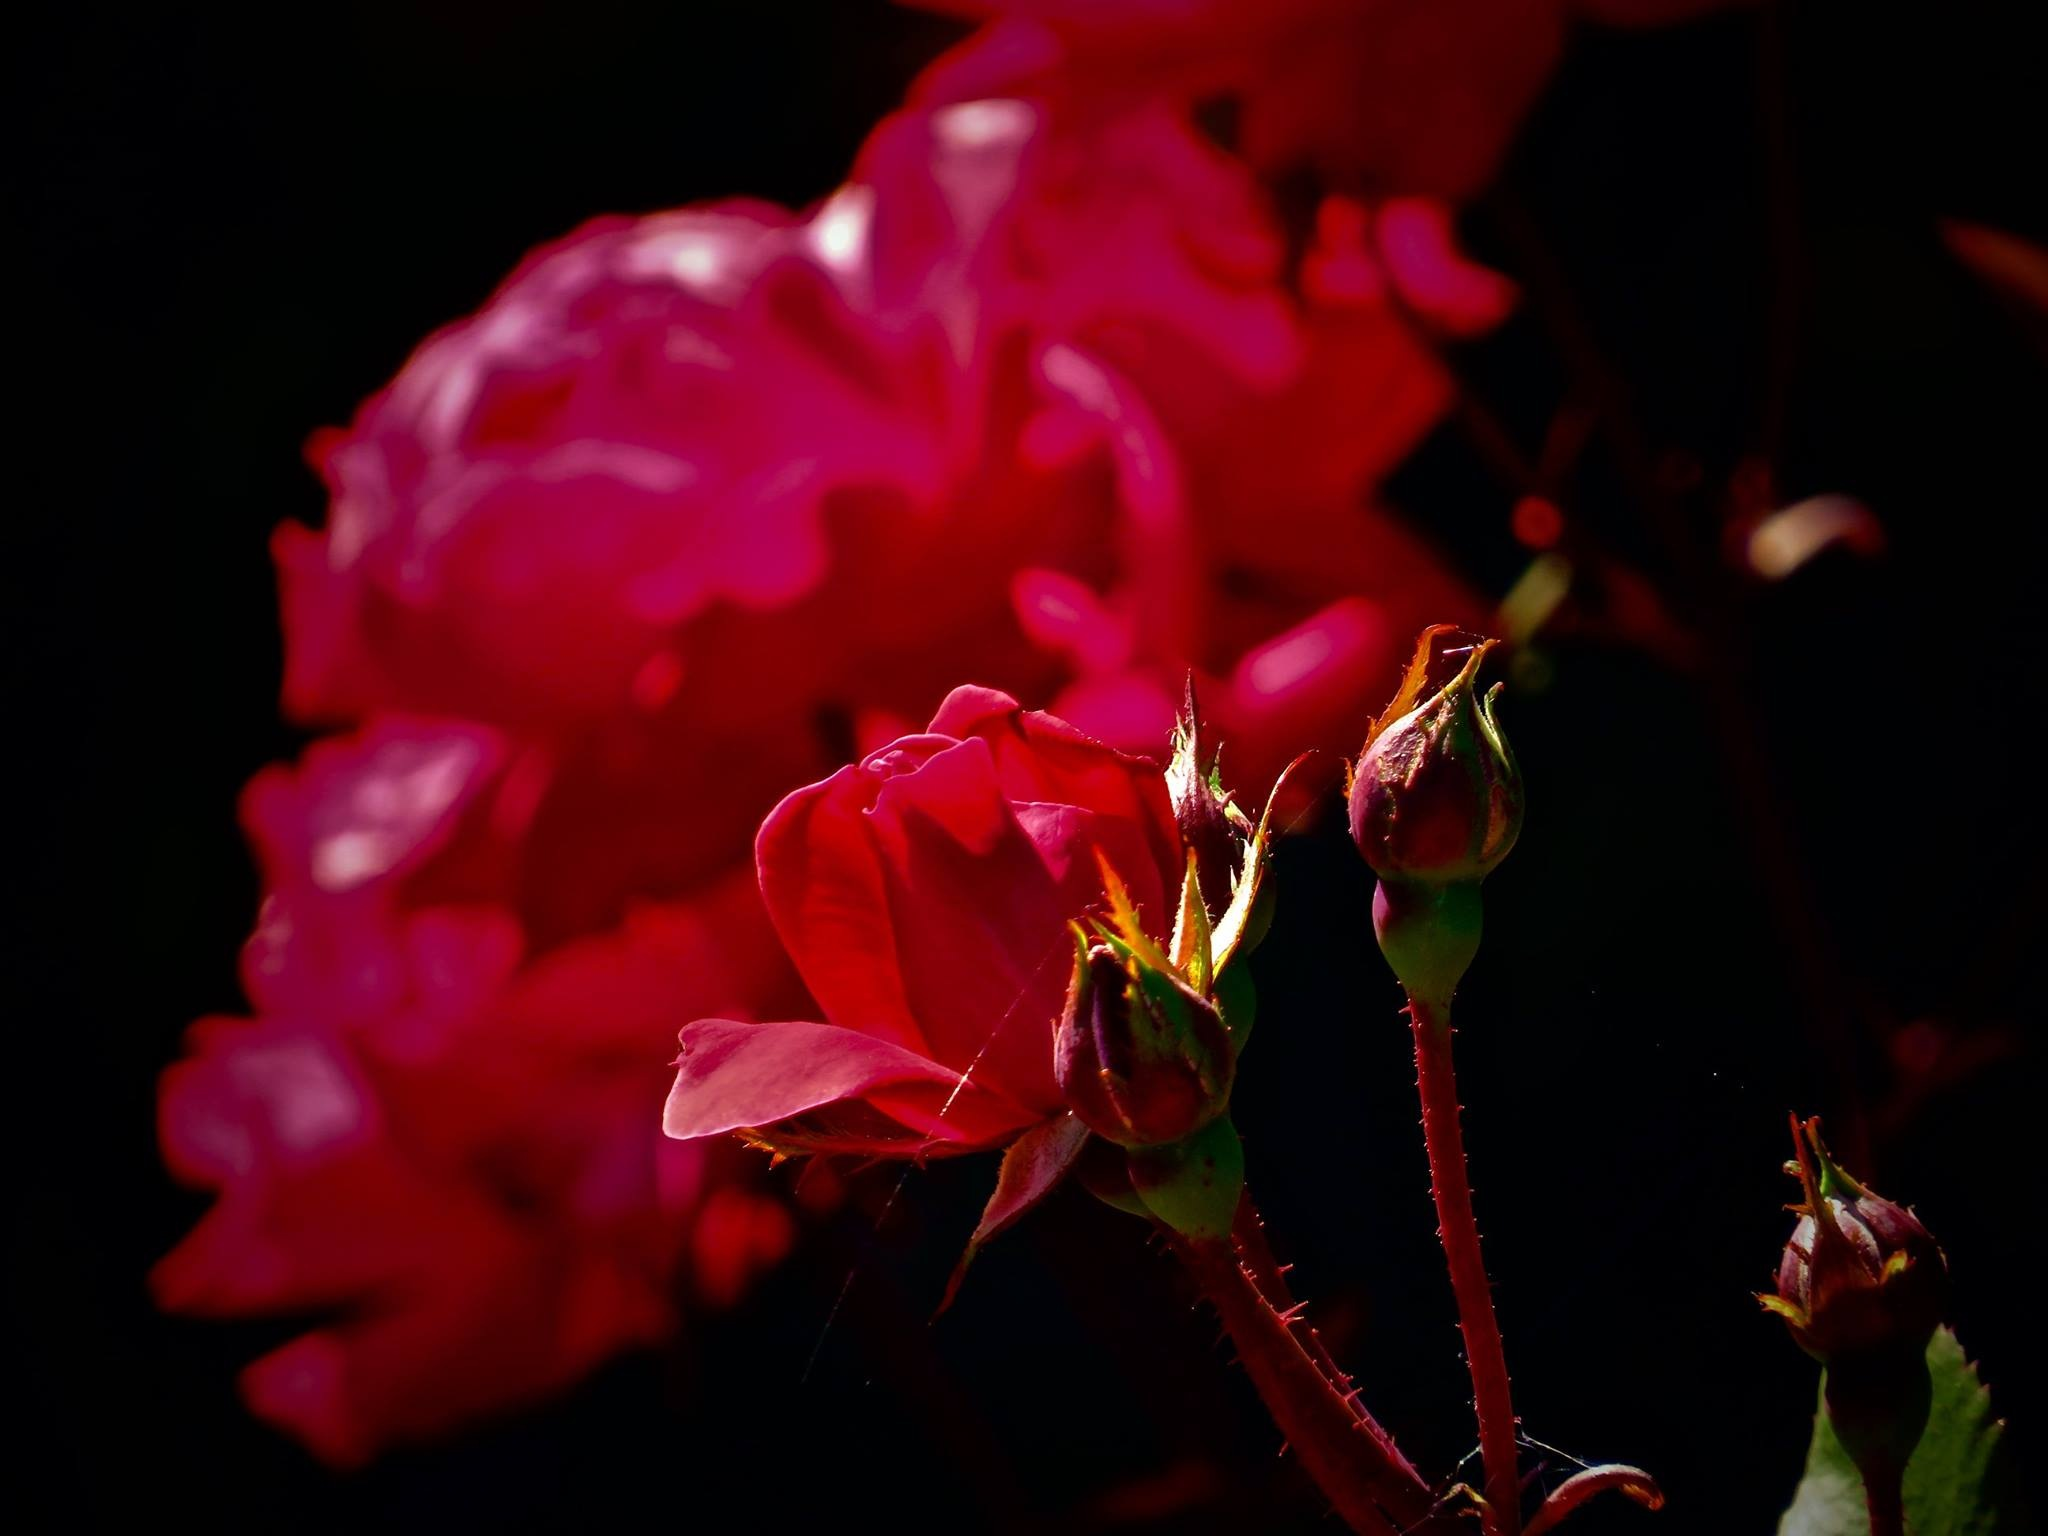 the famous roses of the empress hotel in victoria b.c. canada by David Devion